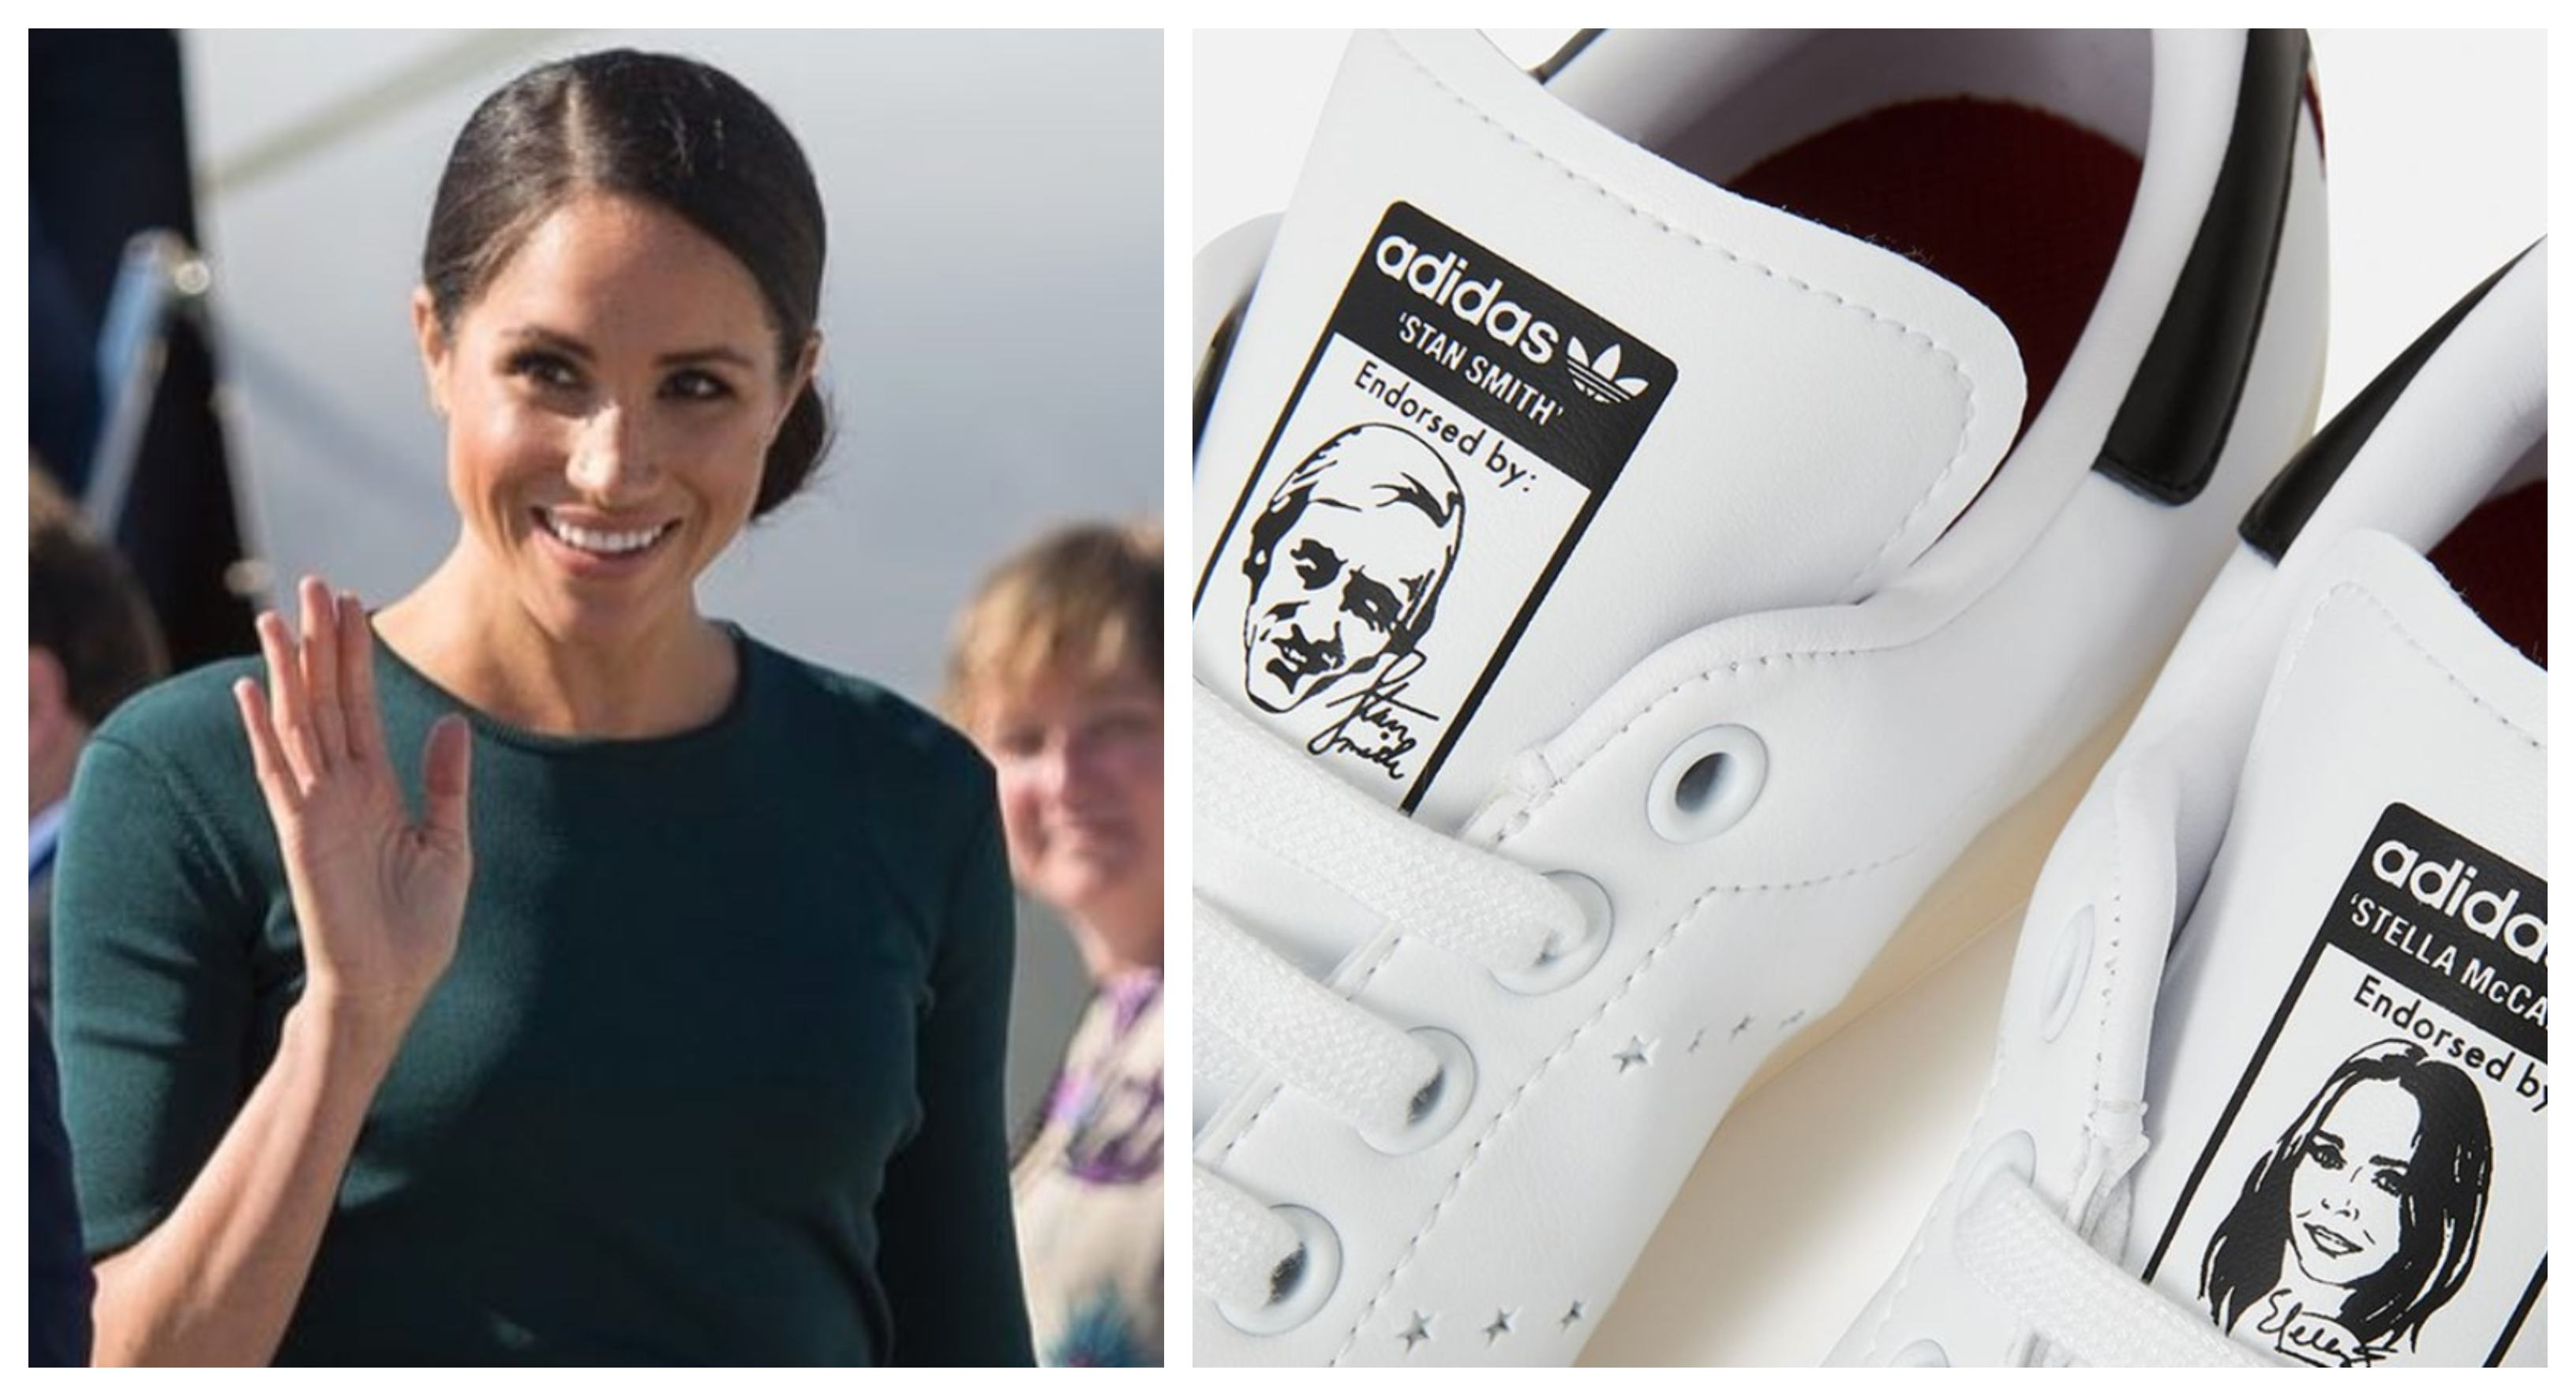 Megan Markle and the Stan Smith trainers